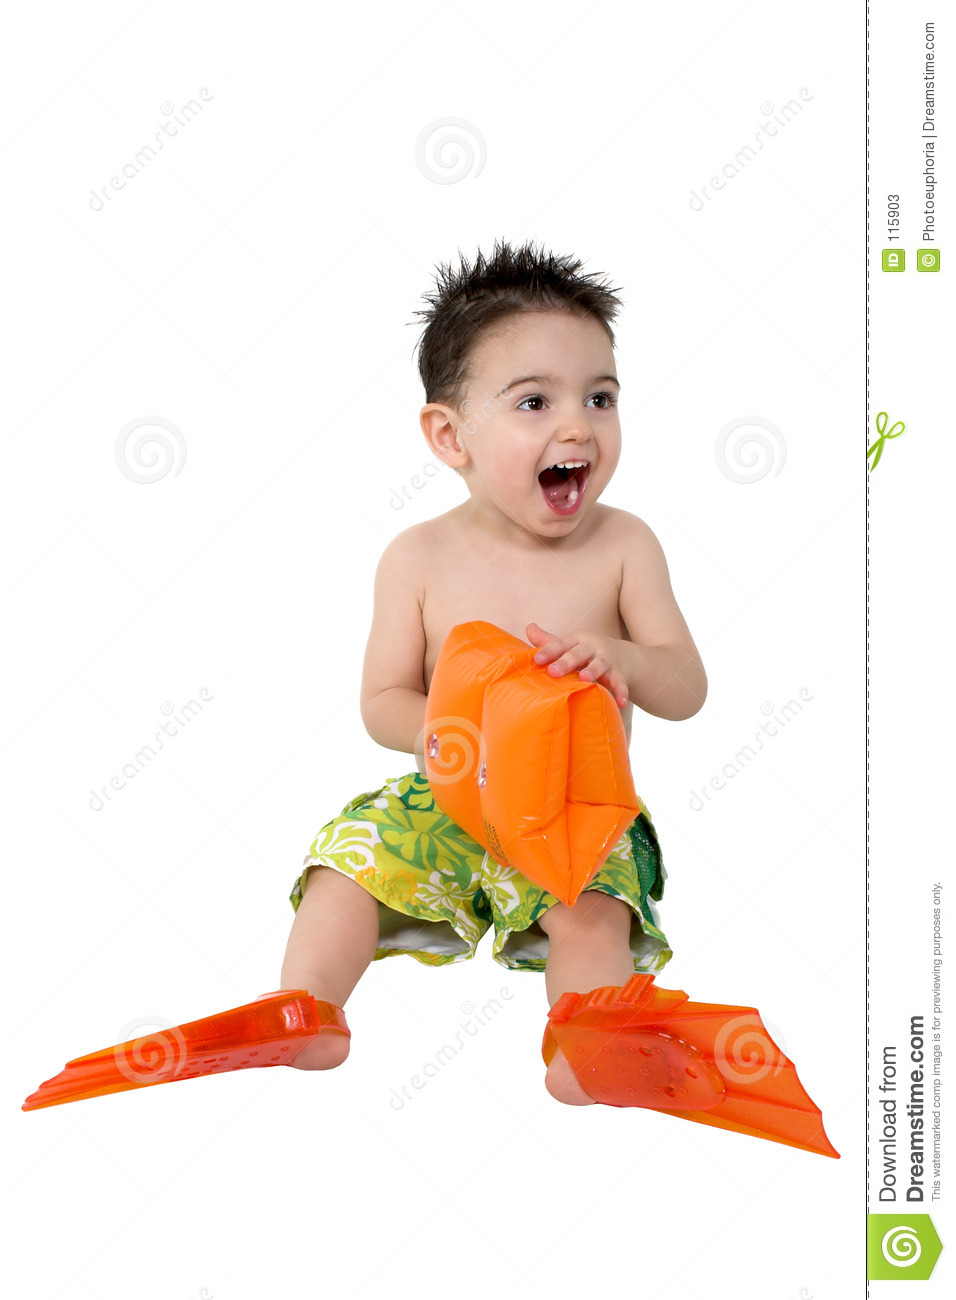 Download Baby Boy With Flippers And Water Wings Stock Image - Image of safety, people: 115903